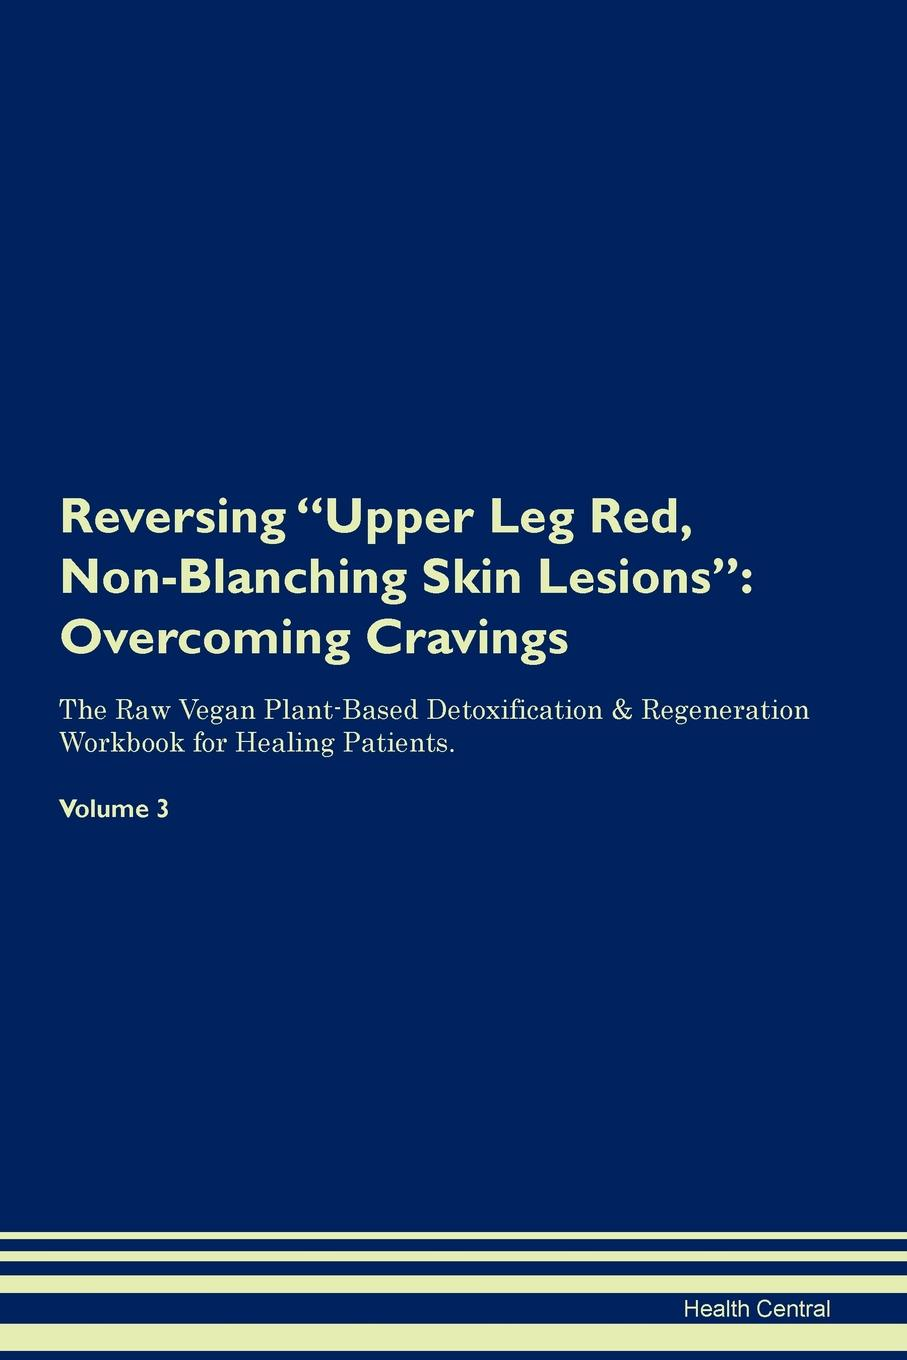 Health Central Reversing Upper Leg Red, Non-Blanching Skin Lesions. Overcoming Cravings The Raw Vegan Plant-Based Detoxification . Regeneration Workbook for Healing Patients. Volume 3